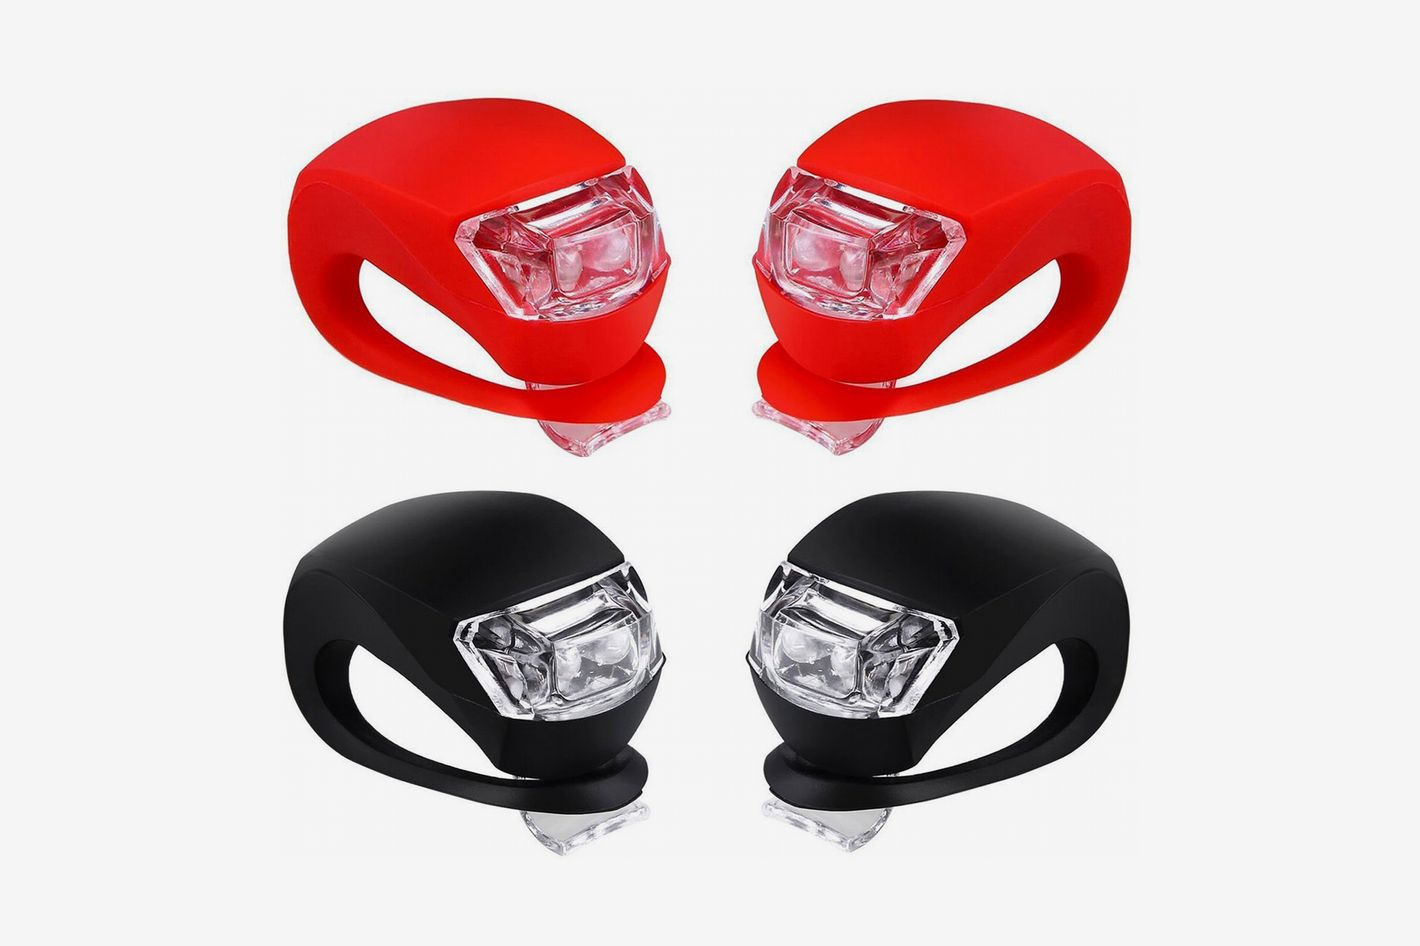 Malker Front and Rear Silicone LED Bike Light Set